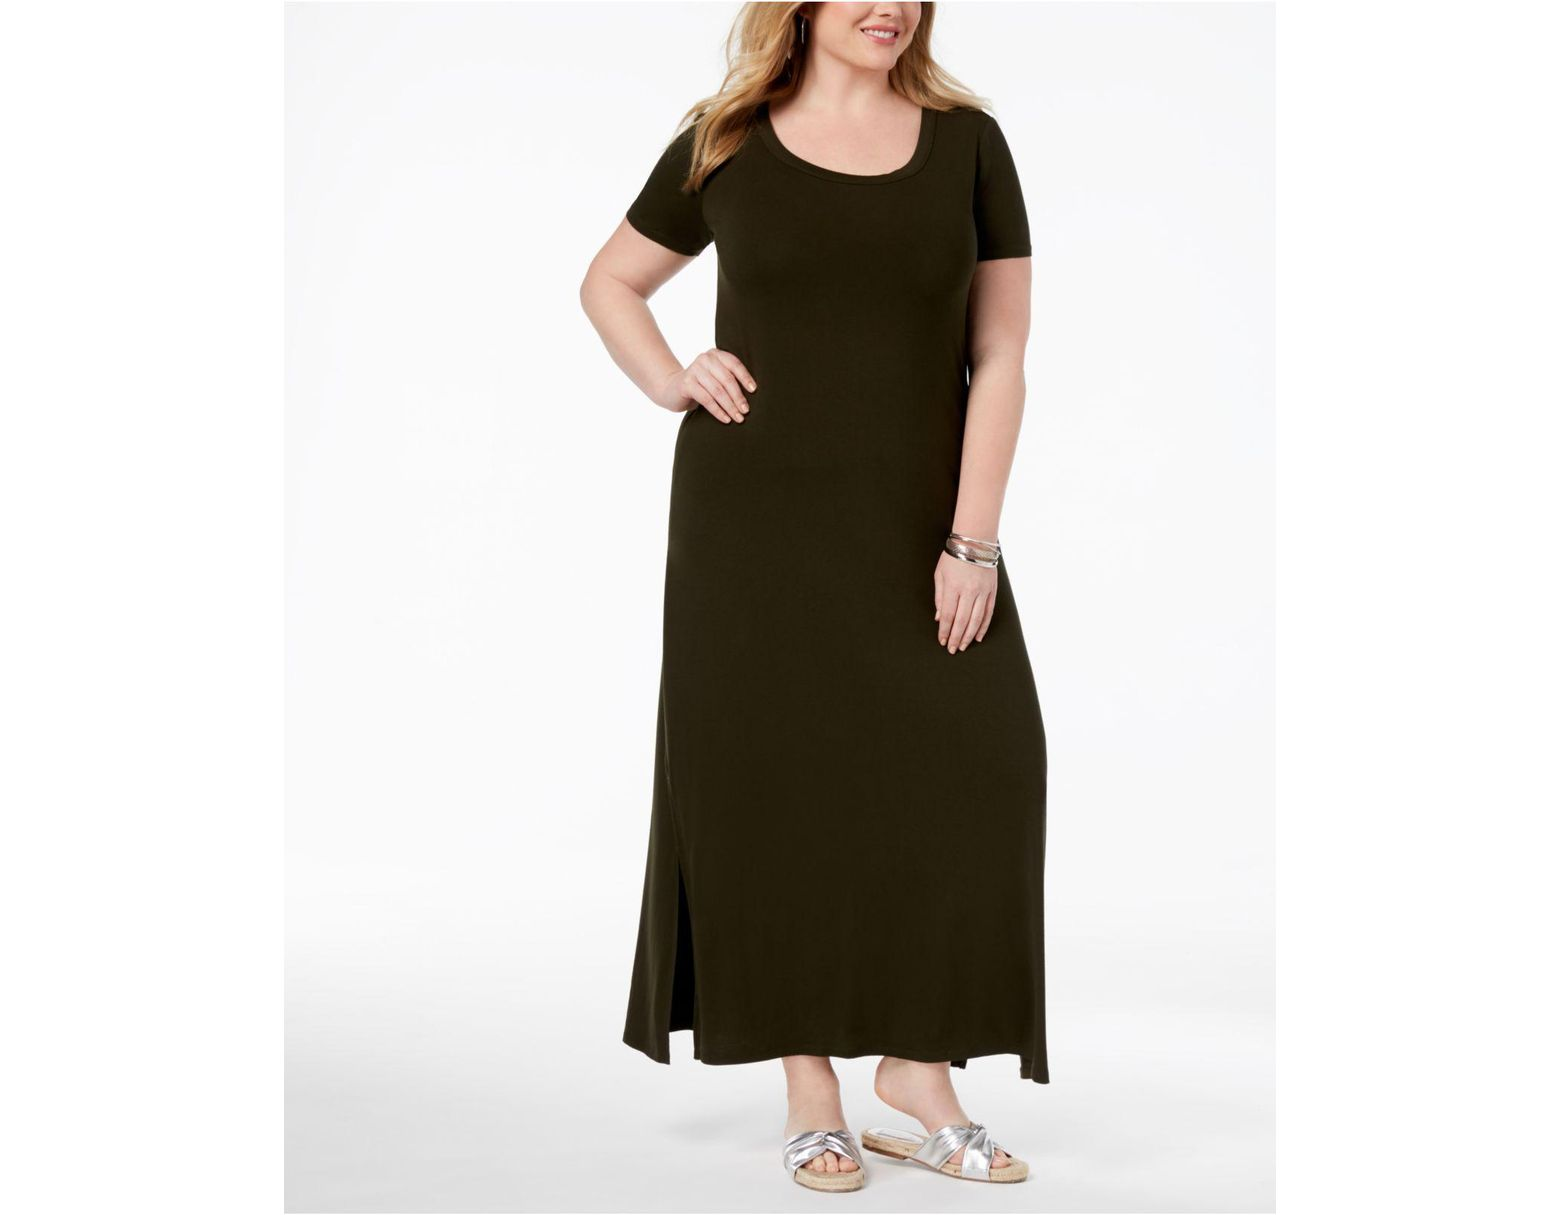 Women\'s Black Plus Size T-shirt Maxi Dress